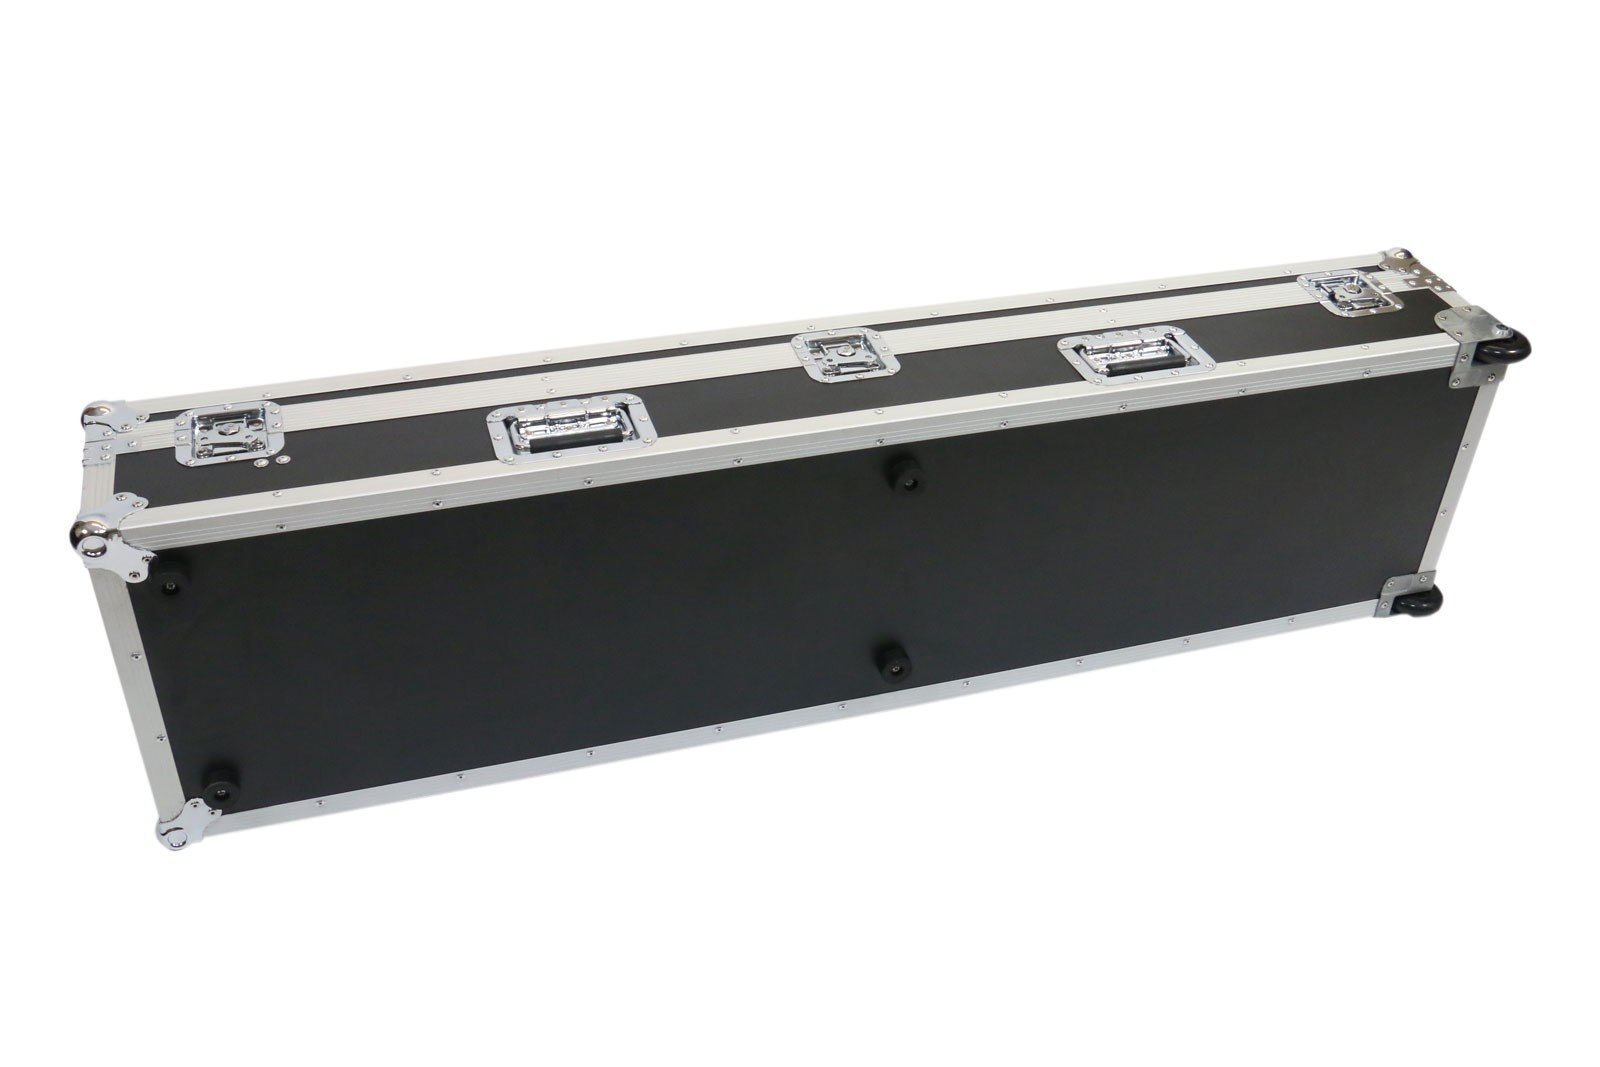 Case with Recessed Casters for Nord Stage2 HA88, Stage EX88, Piano2 HA88, Piano 88